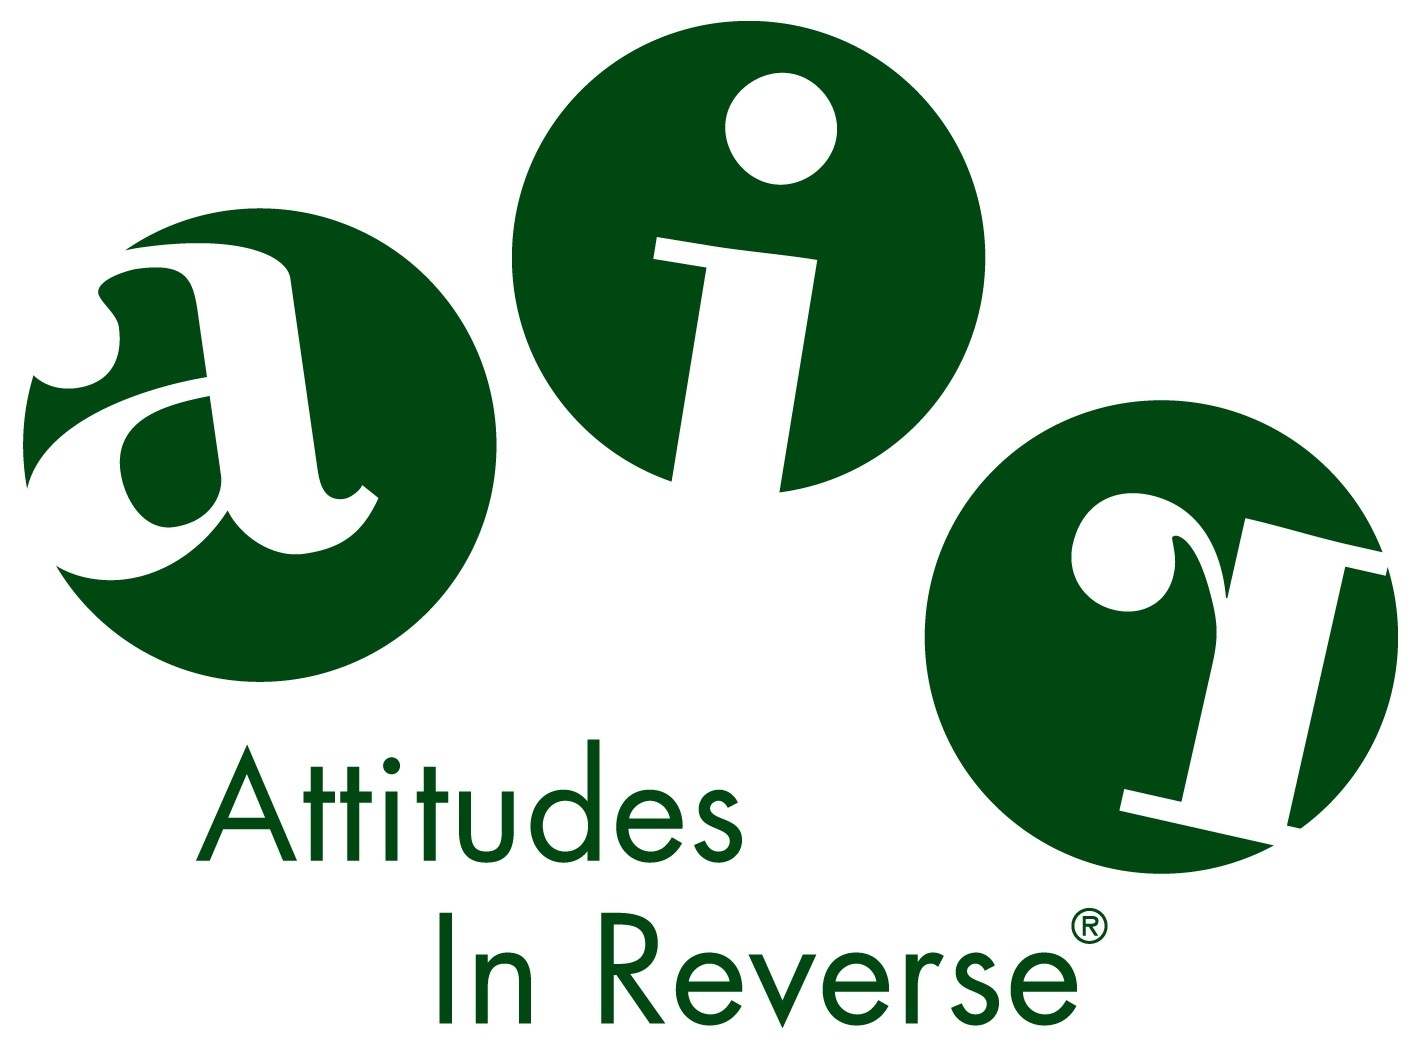 Attitudes In Reverse® Seeks Design Concepts to Help Communicate the Importance of Receiving Mental Health Care and Preventing Suicide